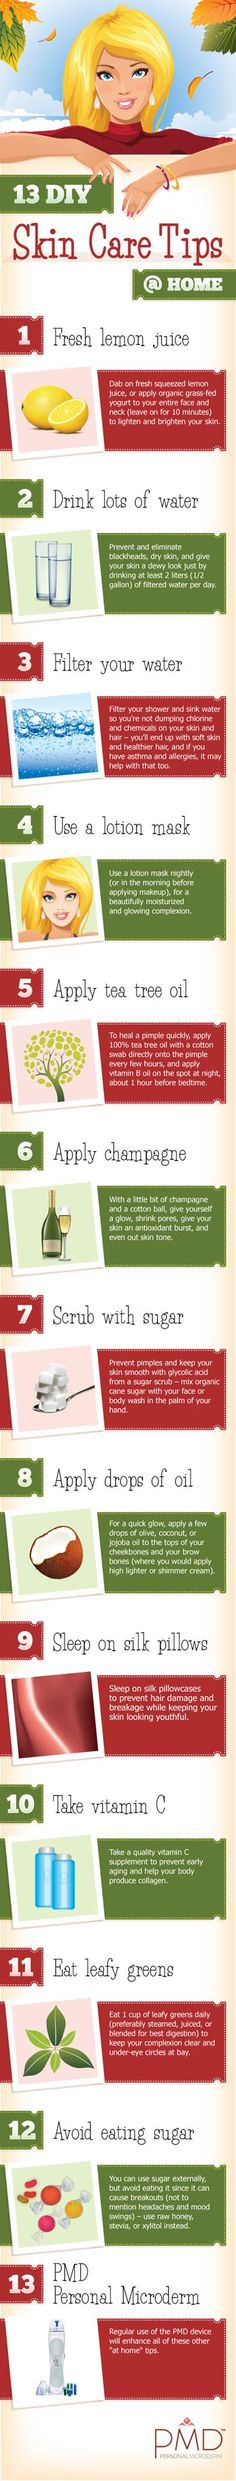 13 DIY Skin Care Tips @ Home! Super easy :)